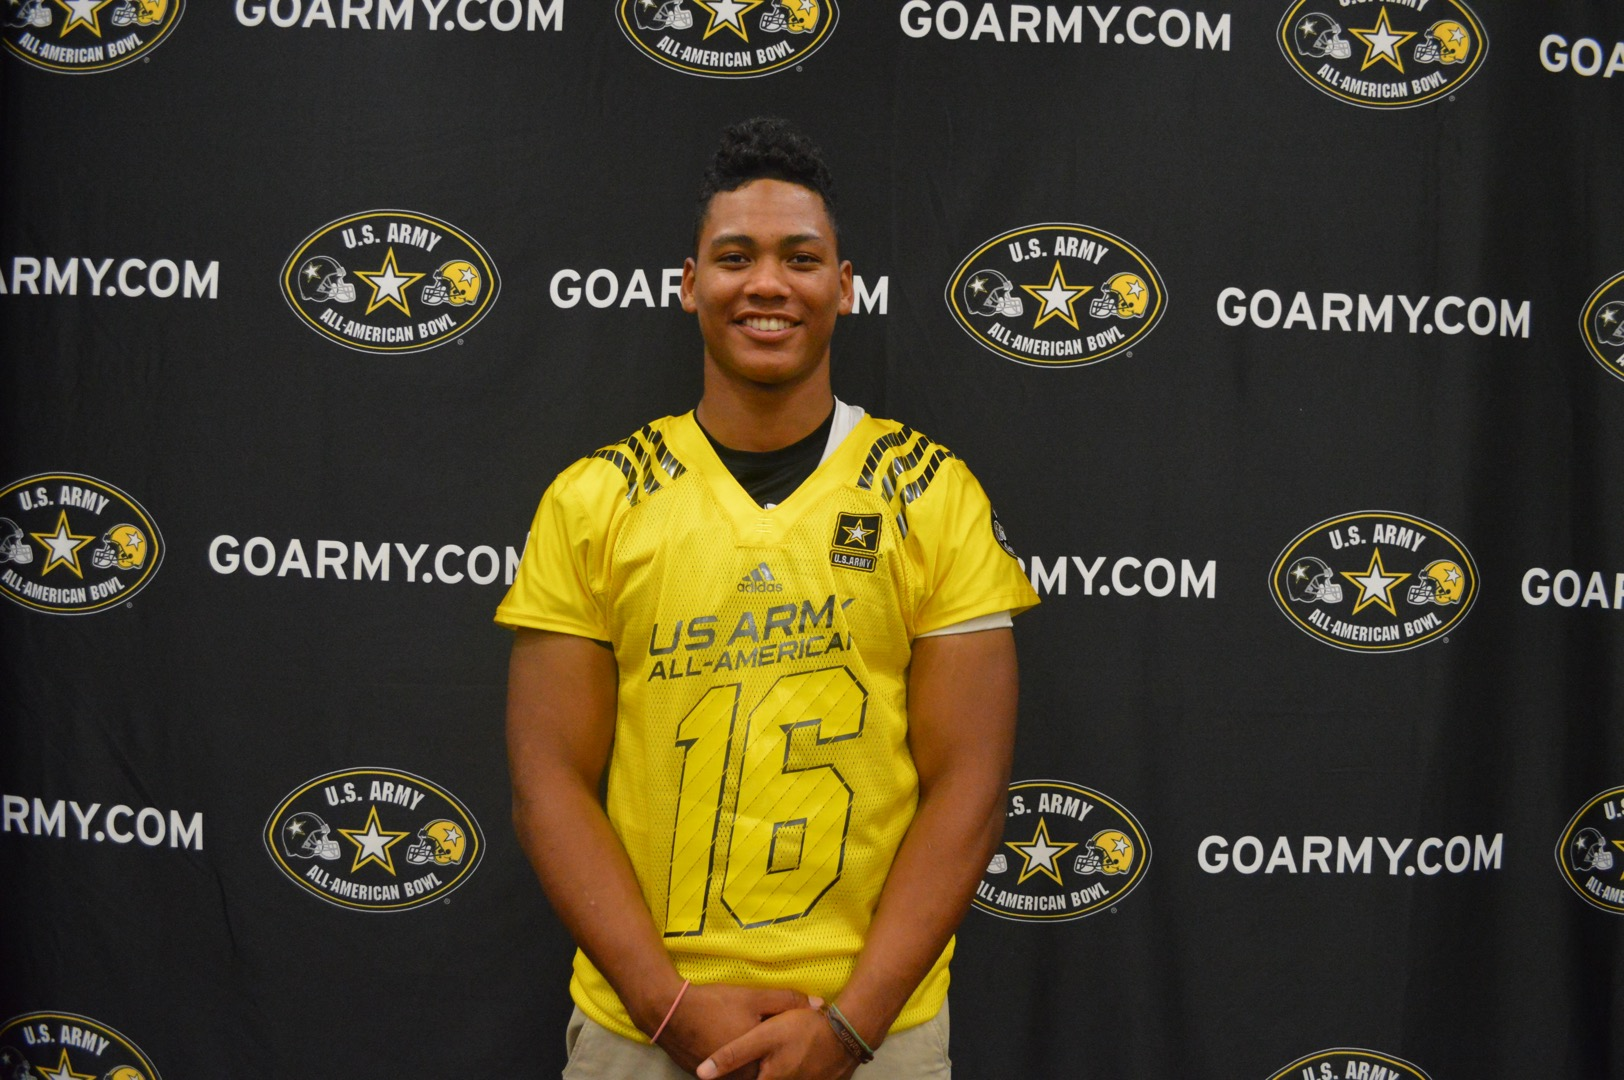 Army All-American Mique Juarez is a finalist for the Butkus Award (Photo: U.S. Army All-American Bowl)